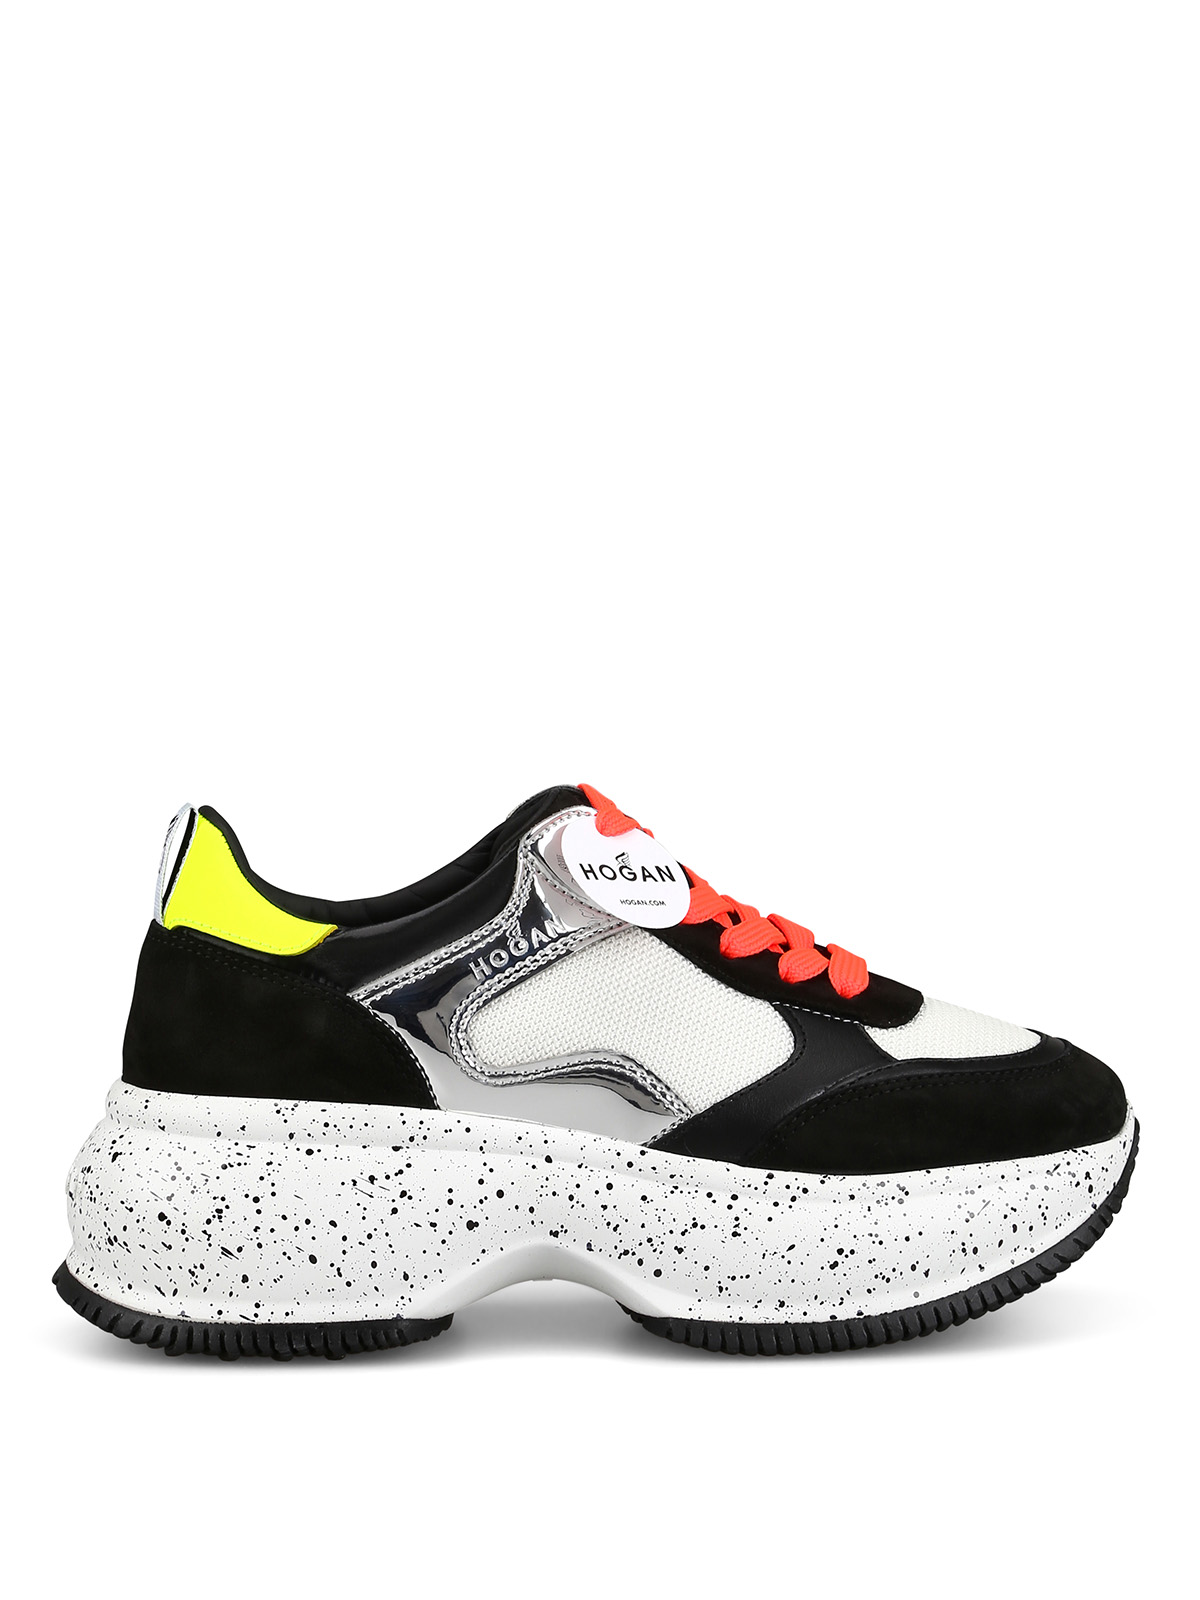 Hogan Maxi I Active Black Oversize Leather & Mesh Sneaker  <br> In Multicolour